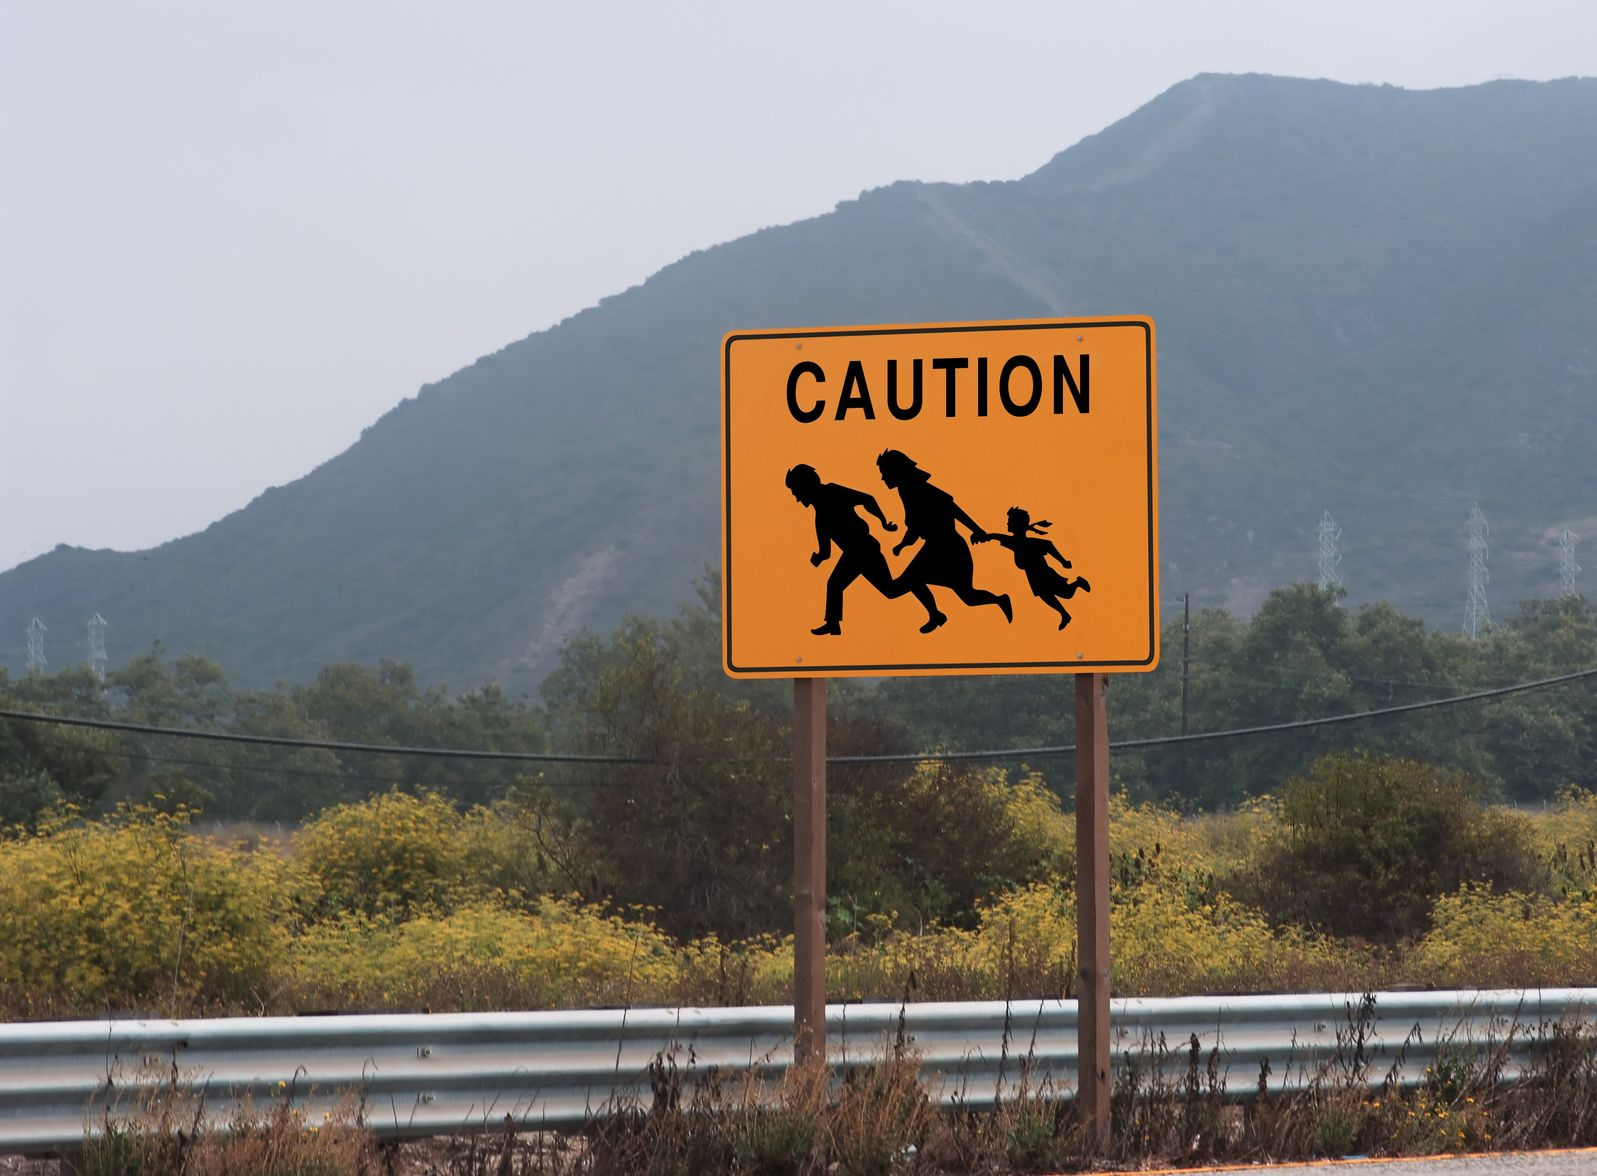 What are some wrongs and rights of illegal immigration?